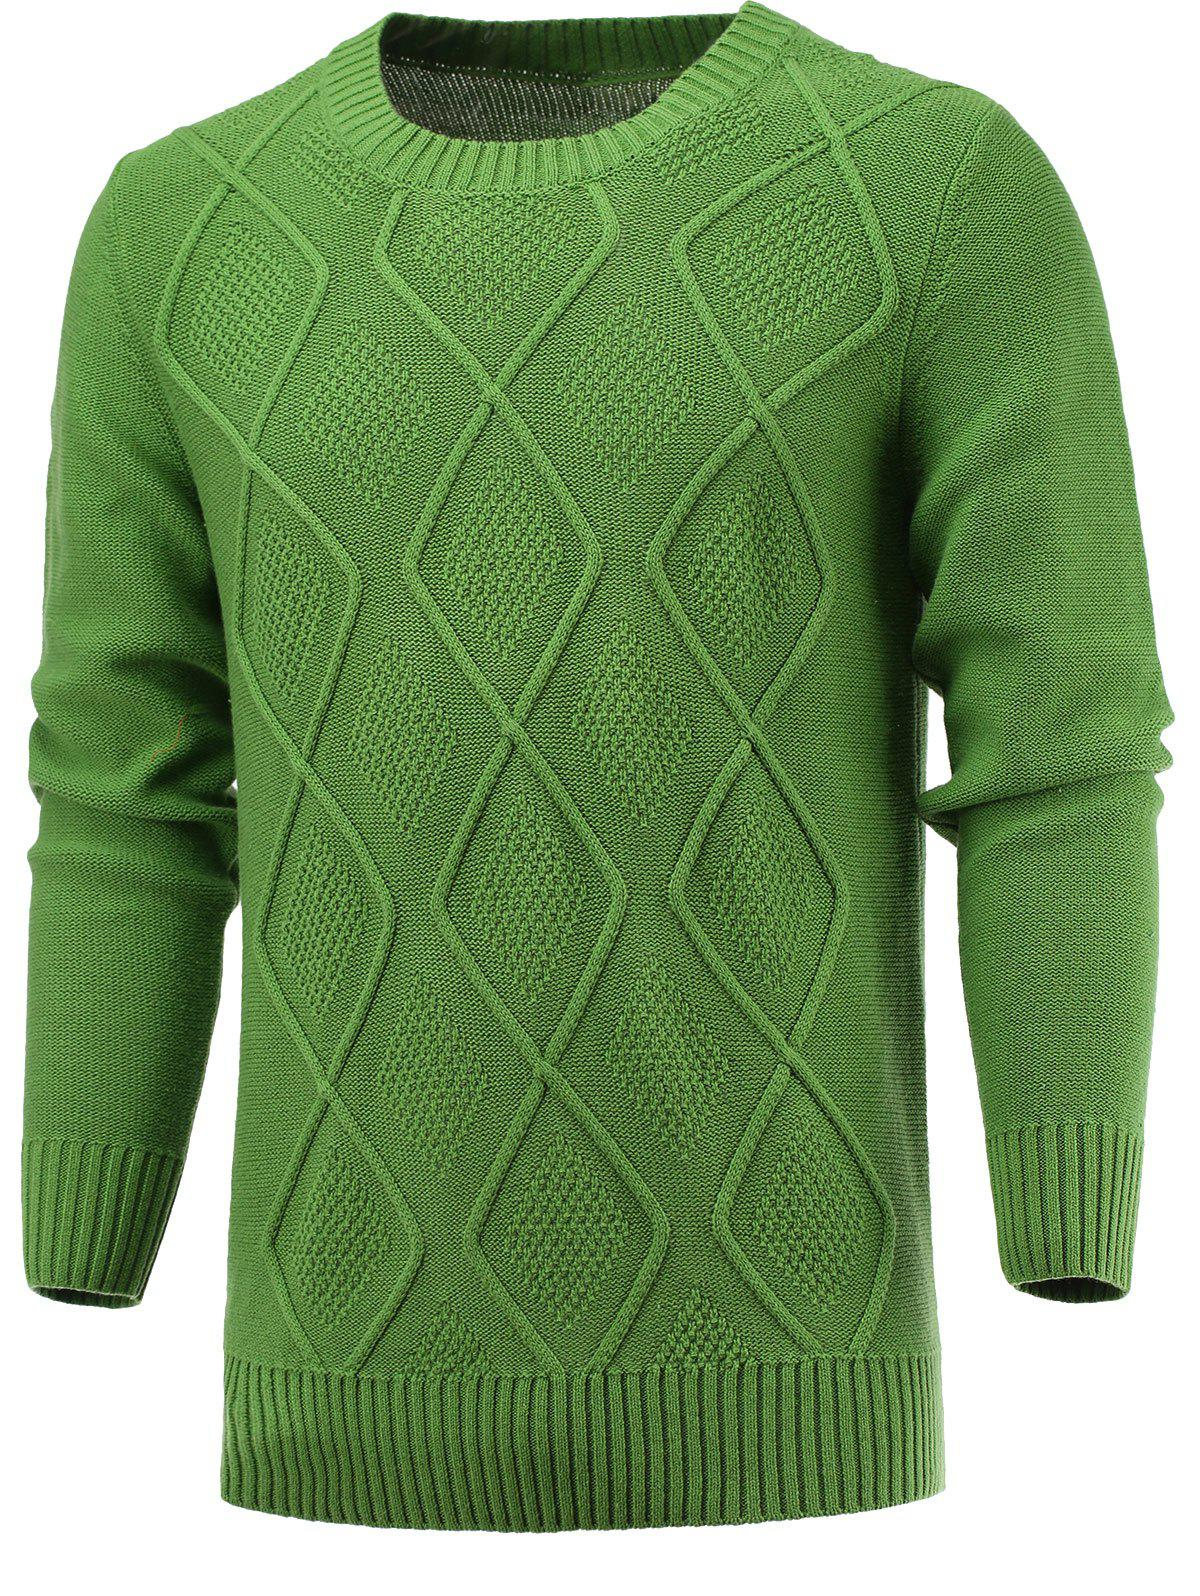 Round Neck Geometric Knitted Sweater - GRASS GREEN 2XL